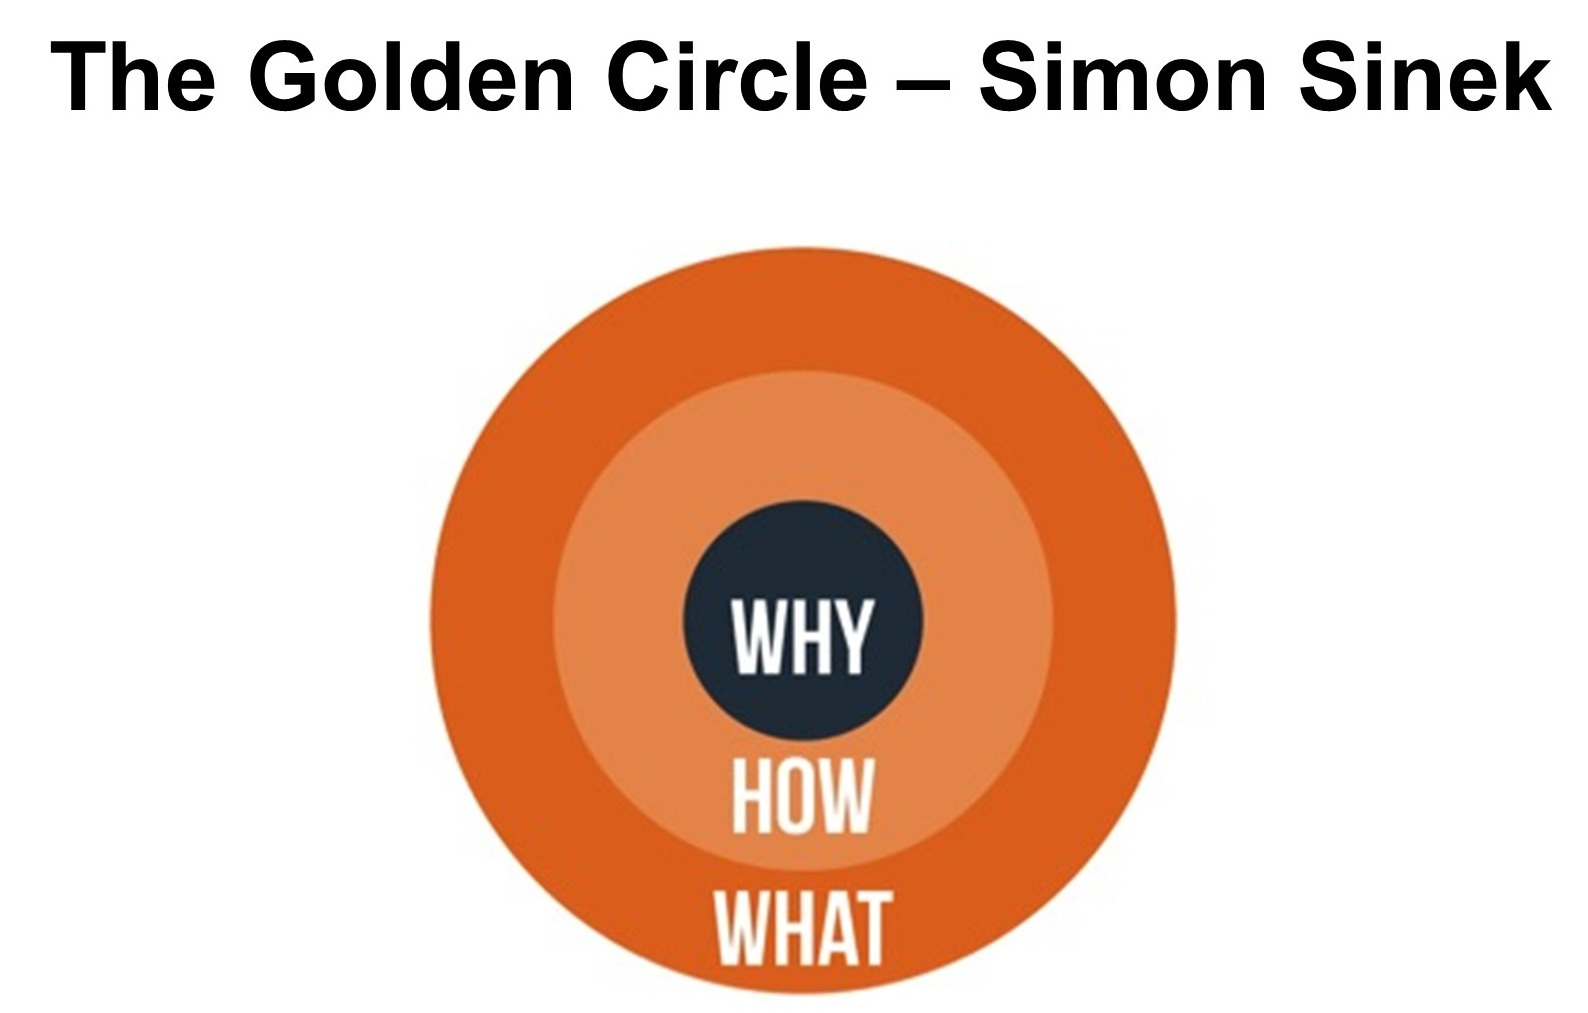 The golden circle Simon Sinek